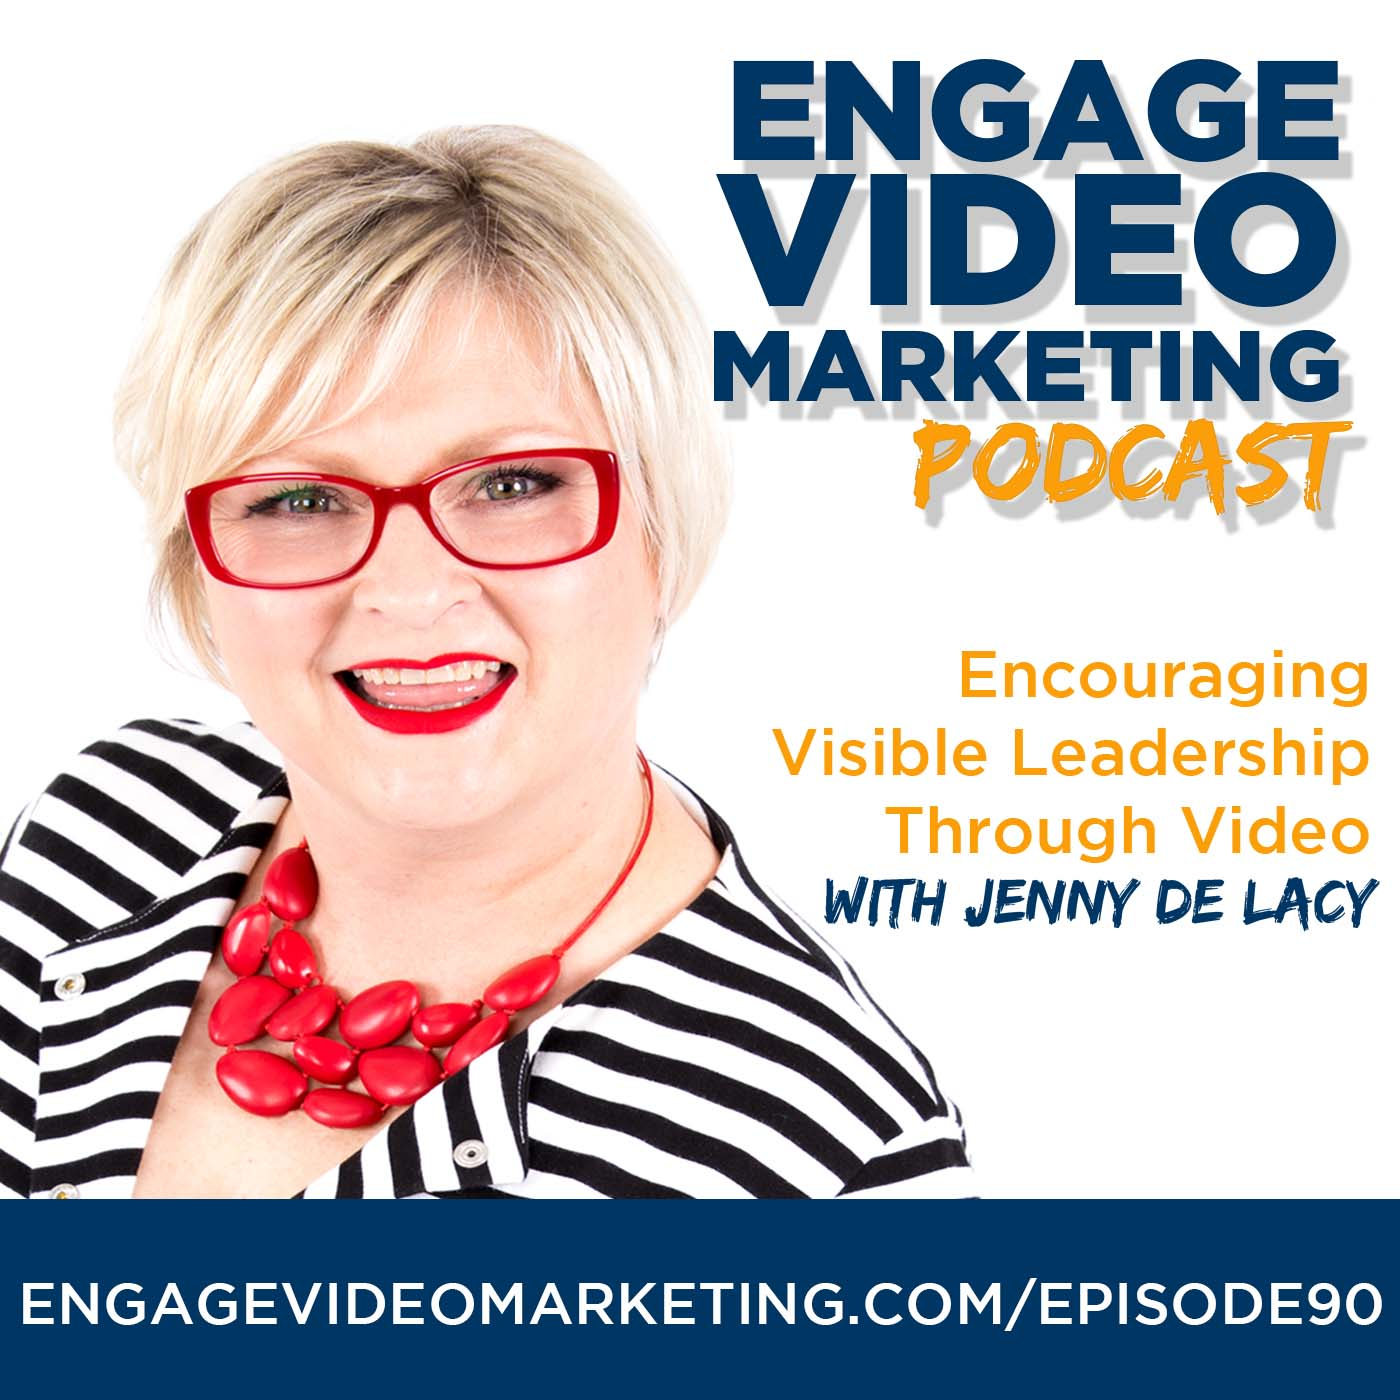 Encouraging Visible Leadership Through Video with Jenny De Lacy